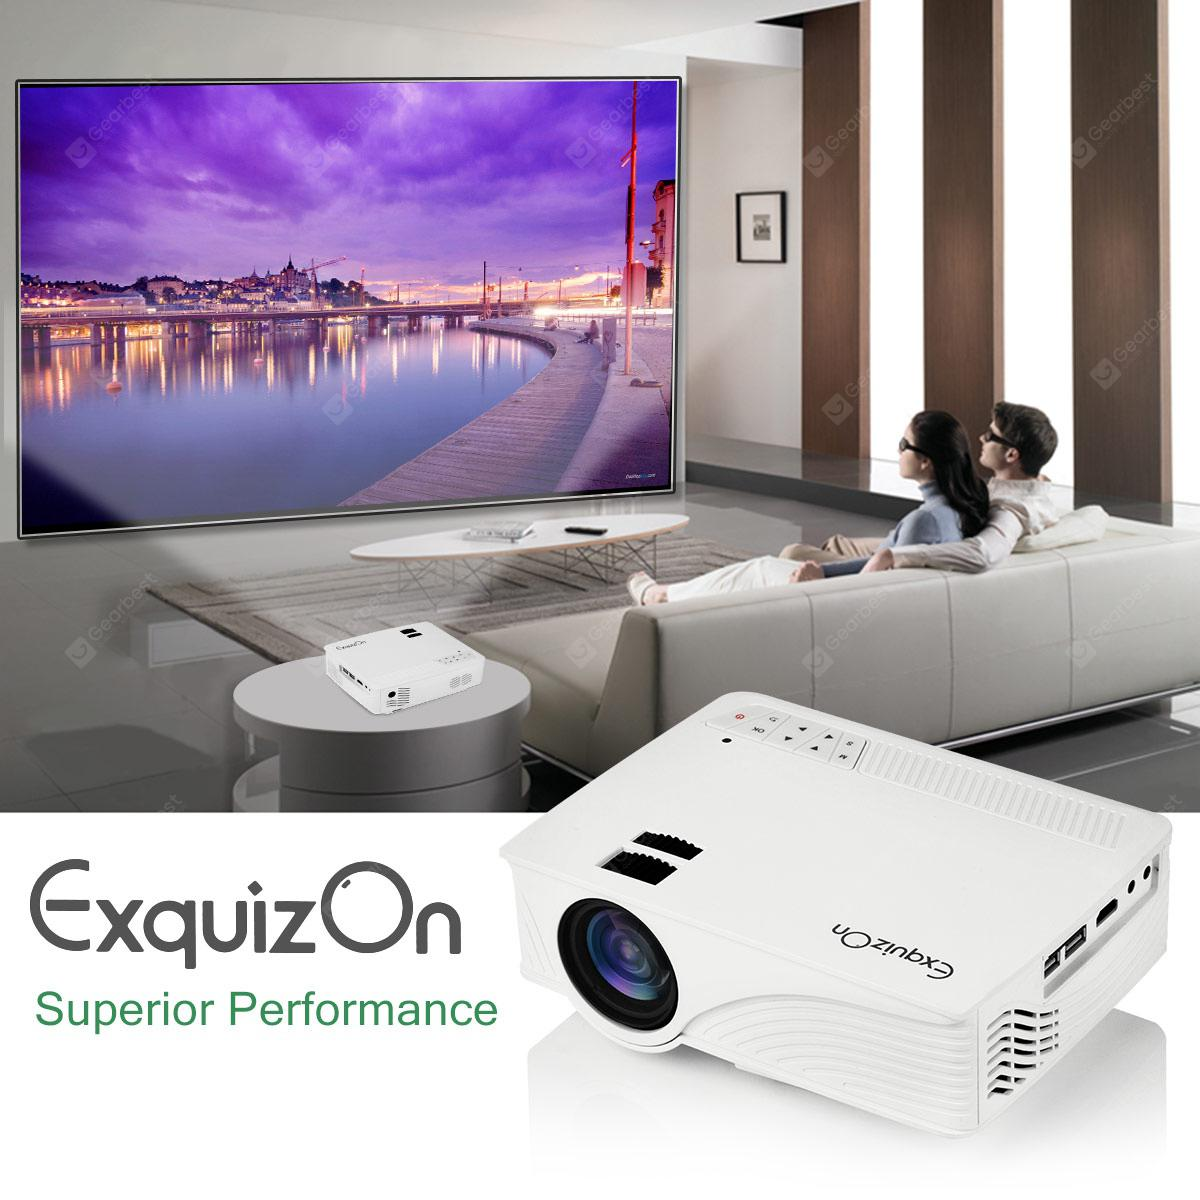 Exquizon LED GP12 портативный проектор 800 * 480P поддержка 1080P HDMI USB SD AV соединения  Белый  EU вилка